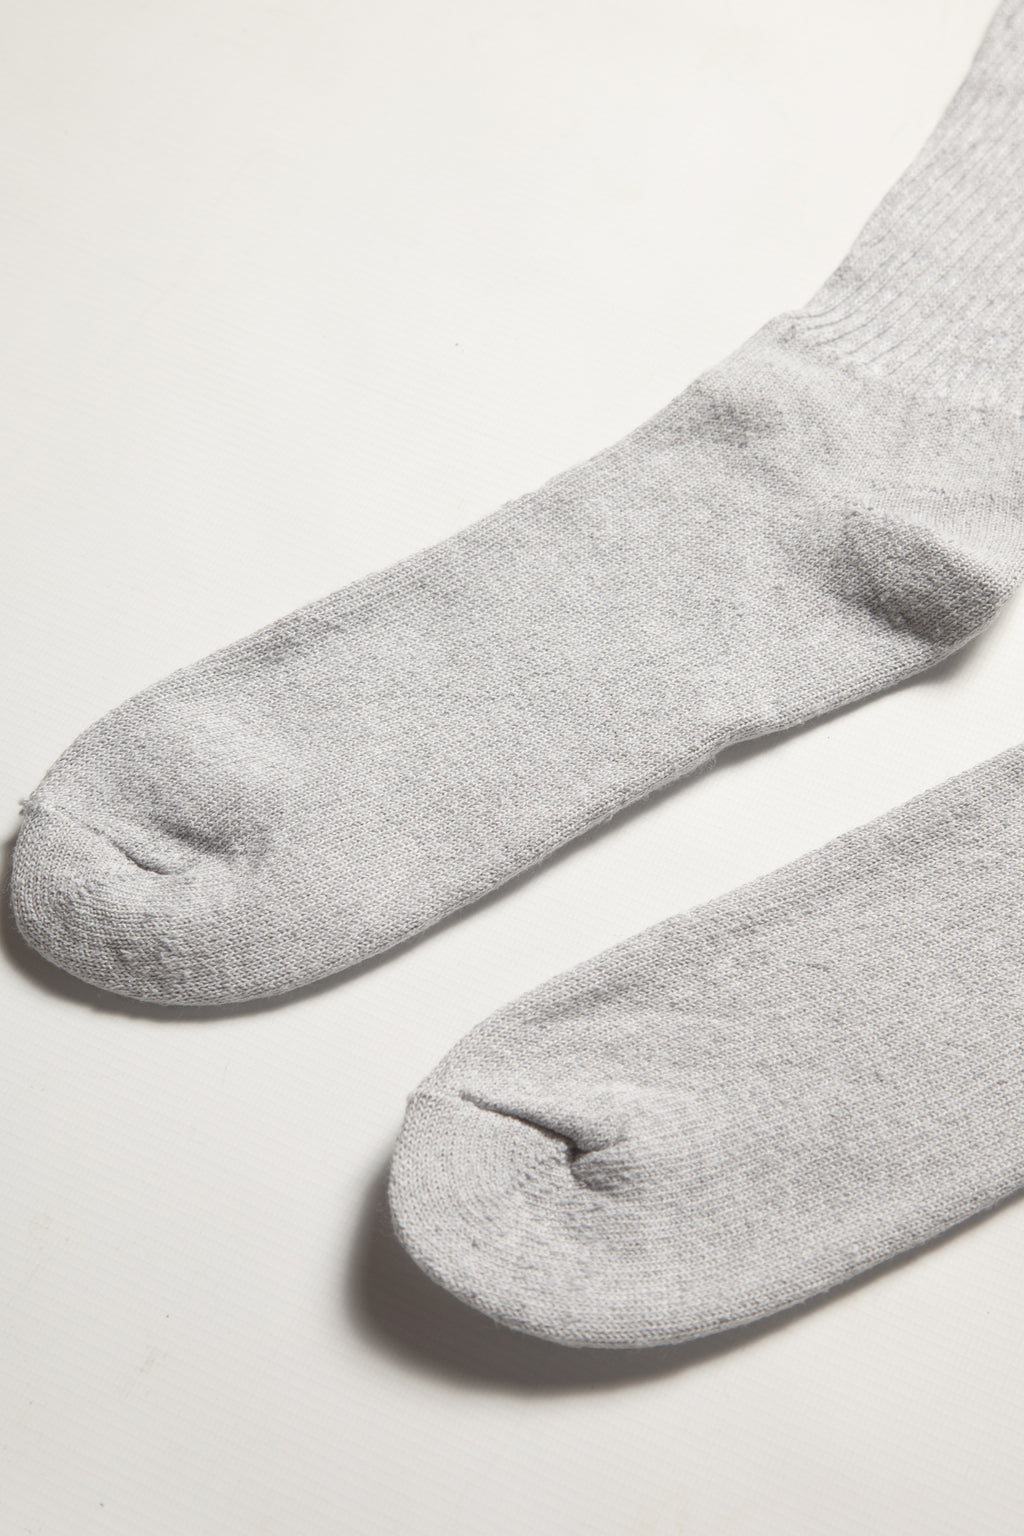 Railroad Sock - 6 Pack Crew Socks - Grey